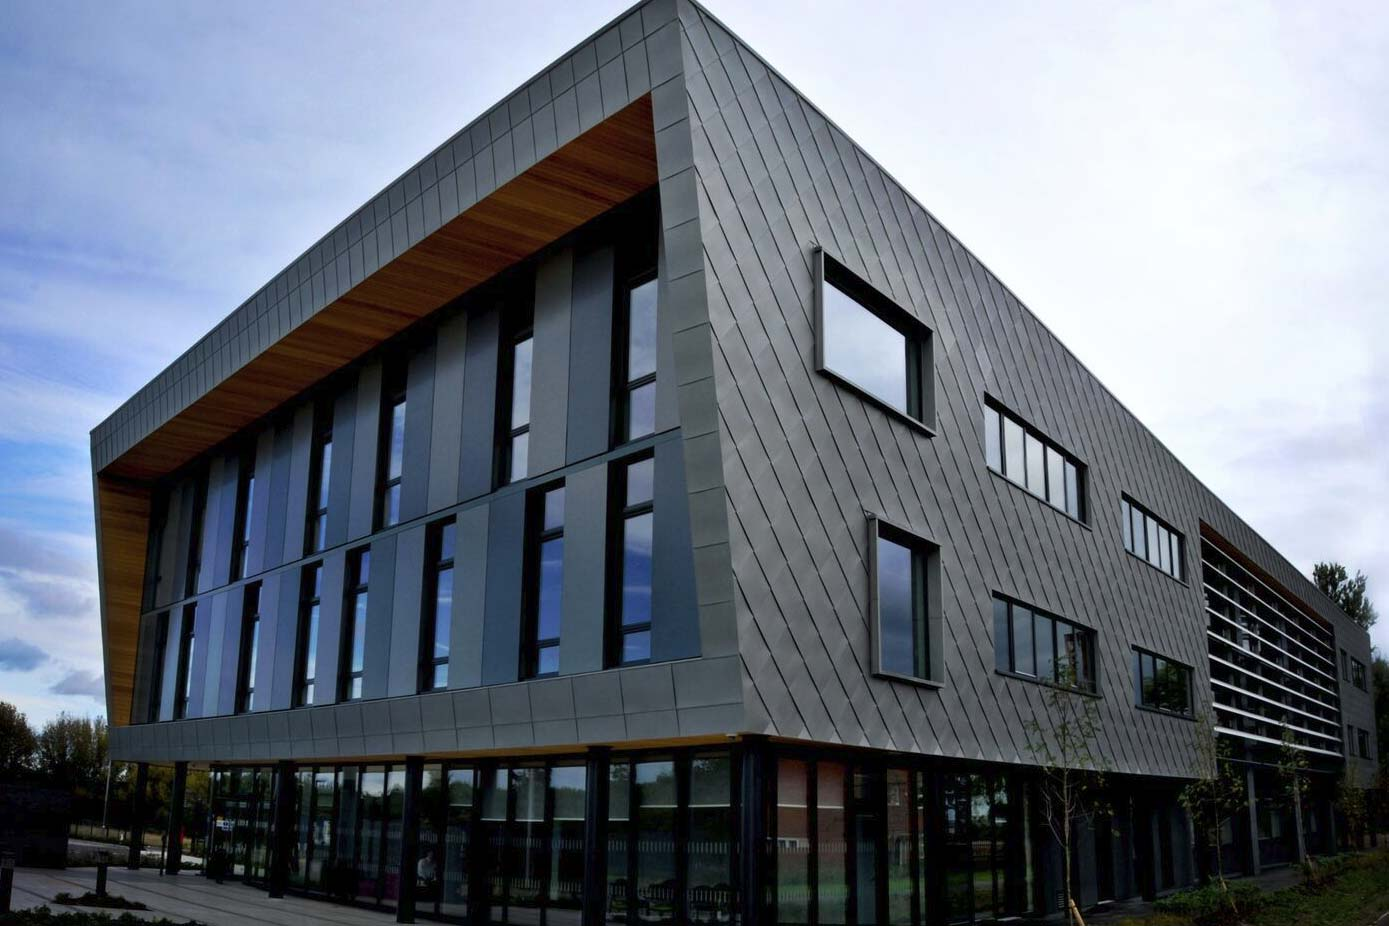 Leicester Science Park cladding